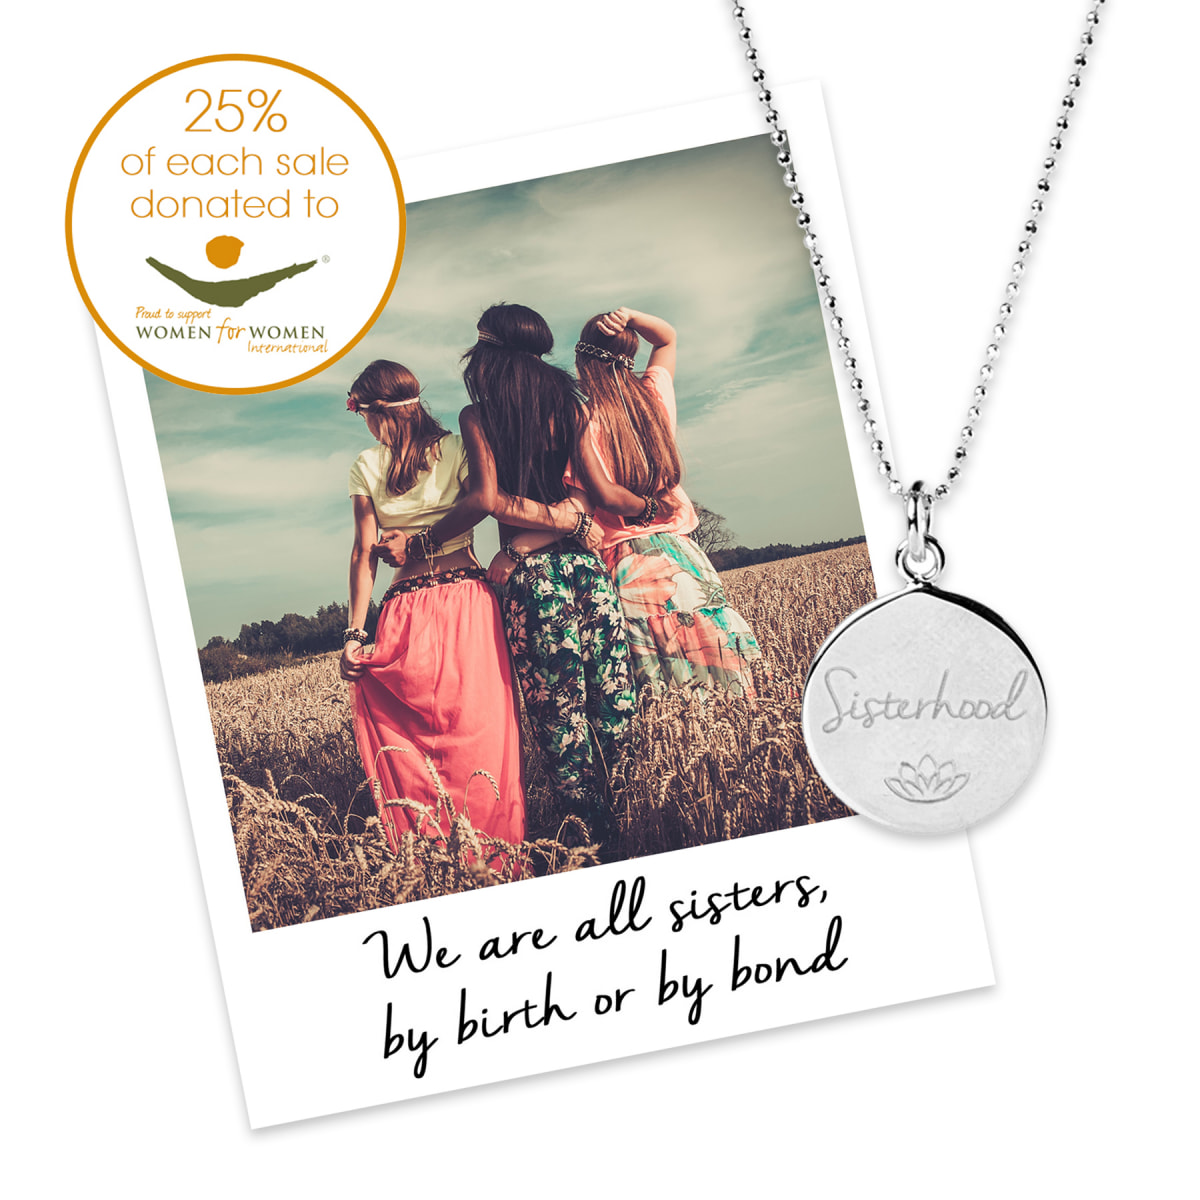 Mantra Sisterhood Necklace, £45 in Sterling Silver, in support of Women for Women International, available from www.mantrajewellery.co.uk